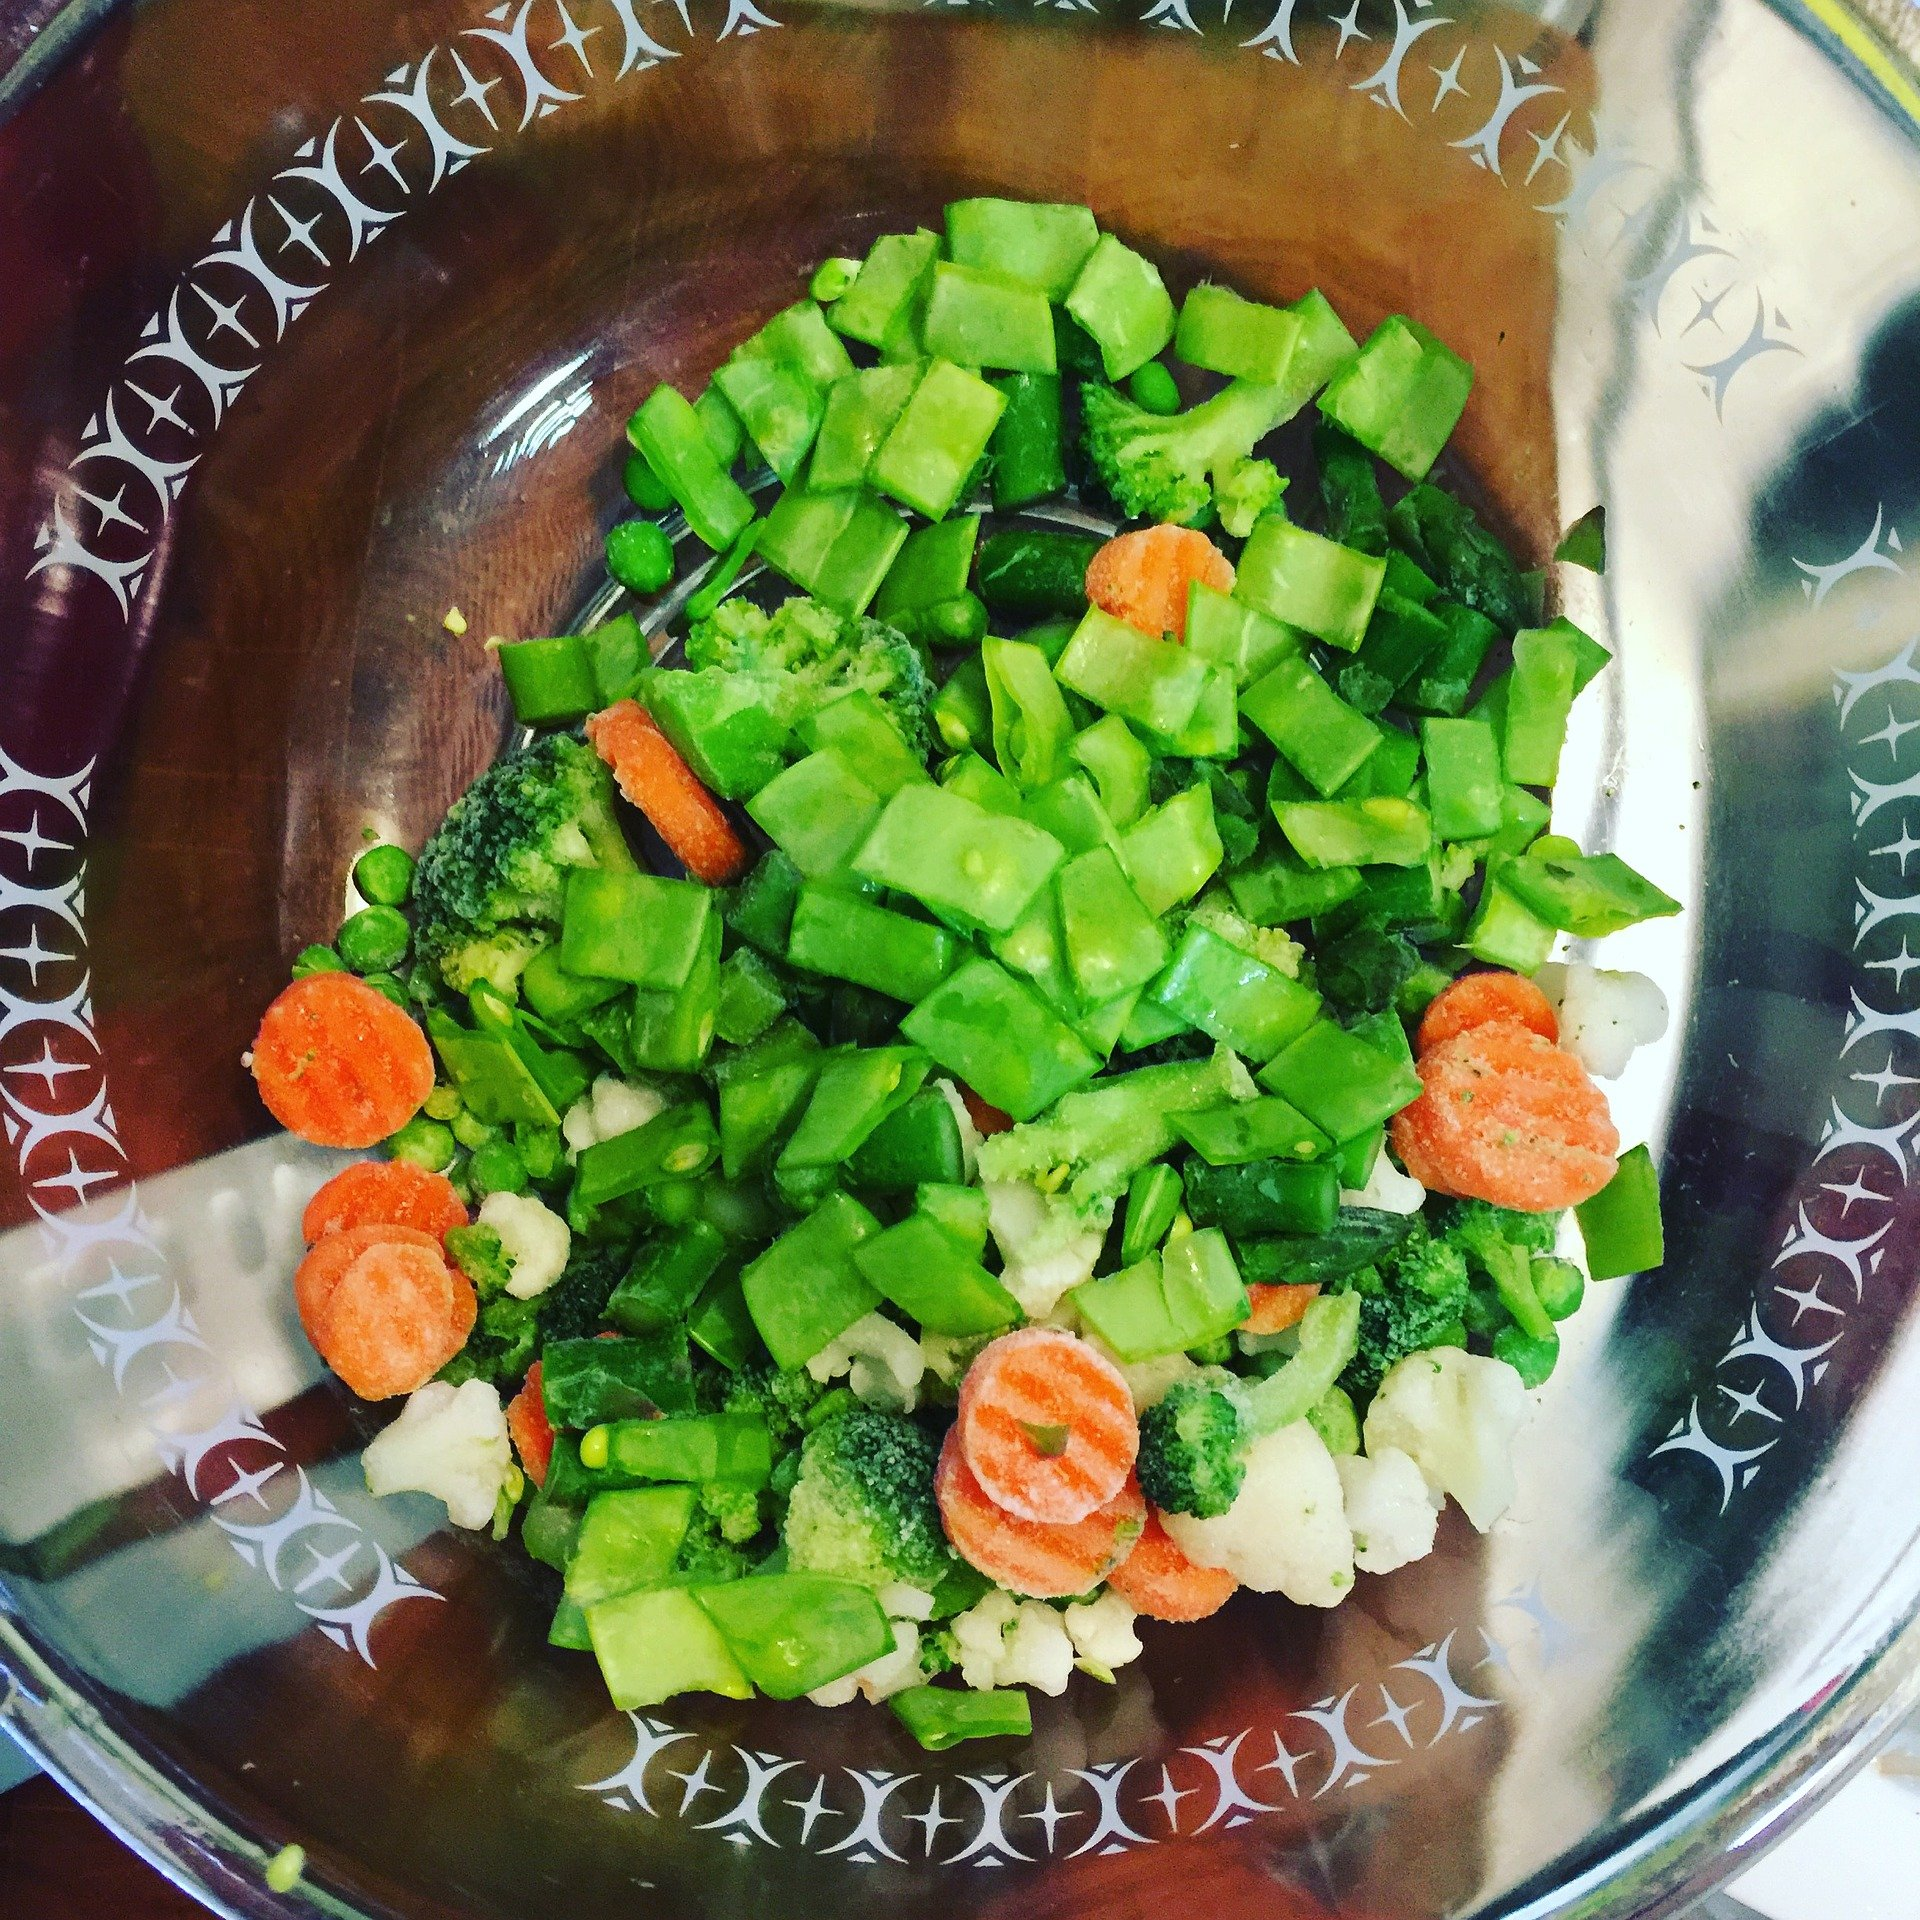 Making a salad to eat all week is a great way to food prep